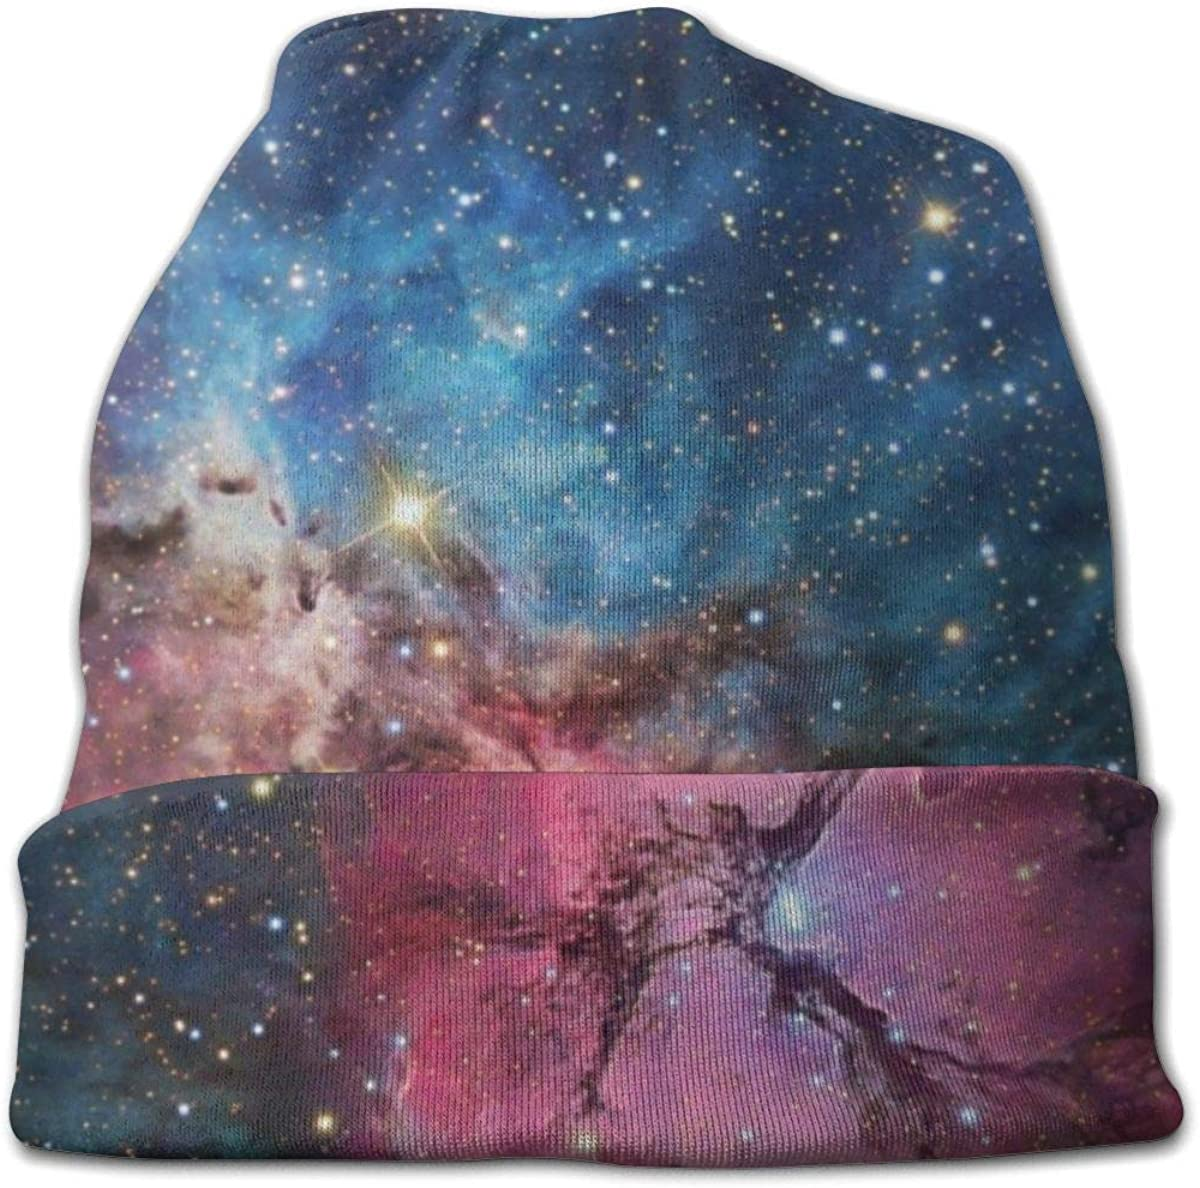 Galactic Sta-rry Sky Upgrade Fashion Hip-hop Adult Pullovers Knit Hats for Men Women New Hot Style